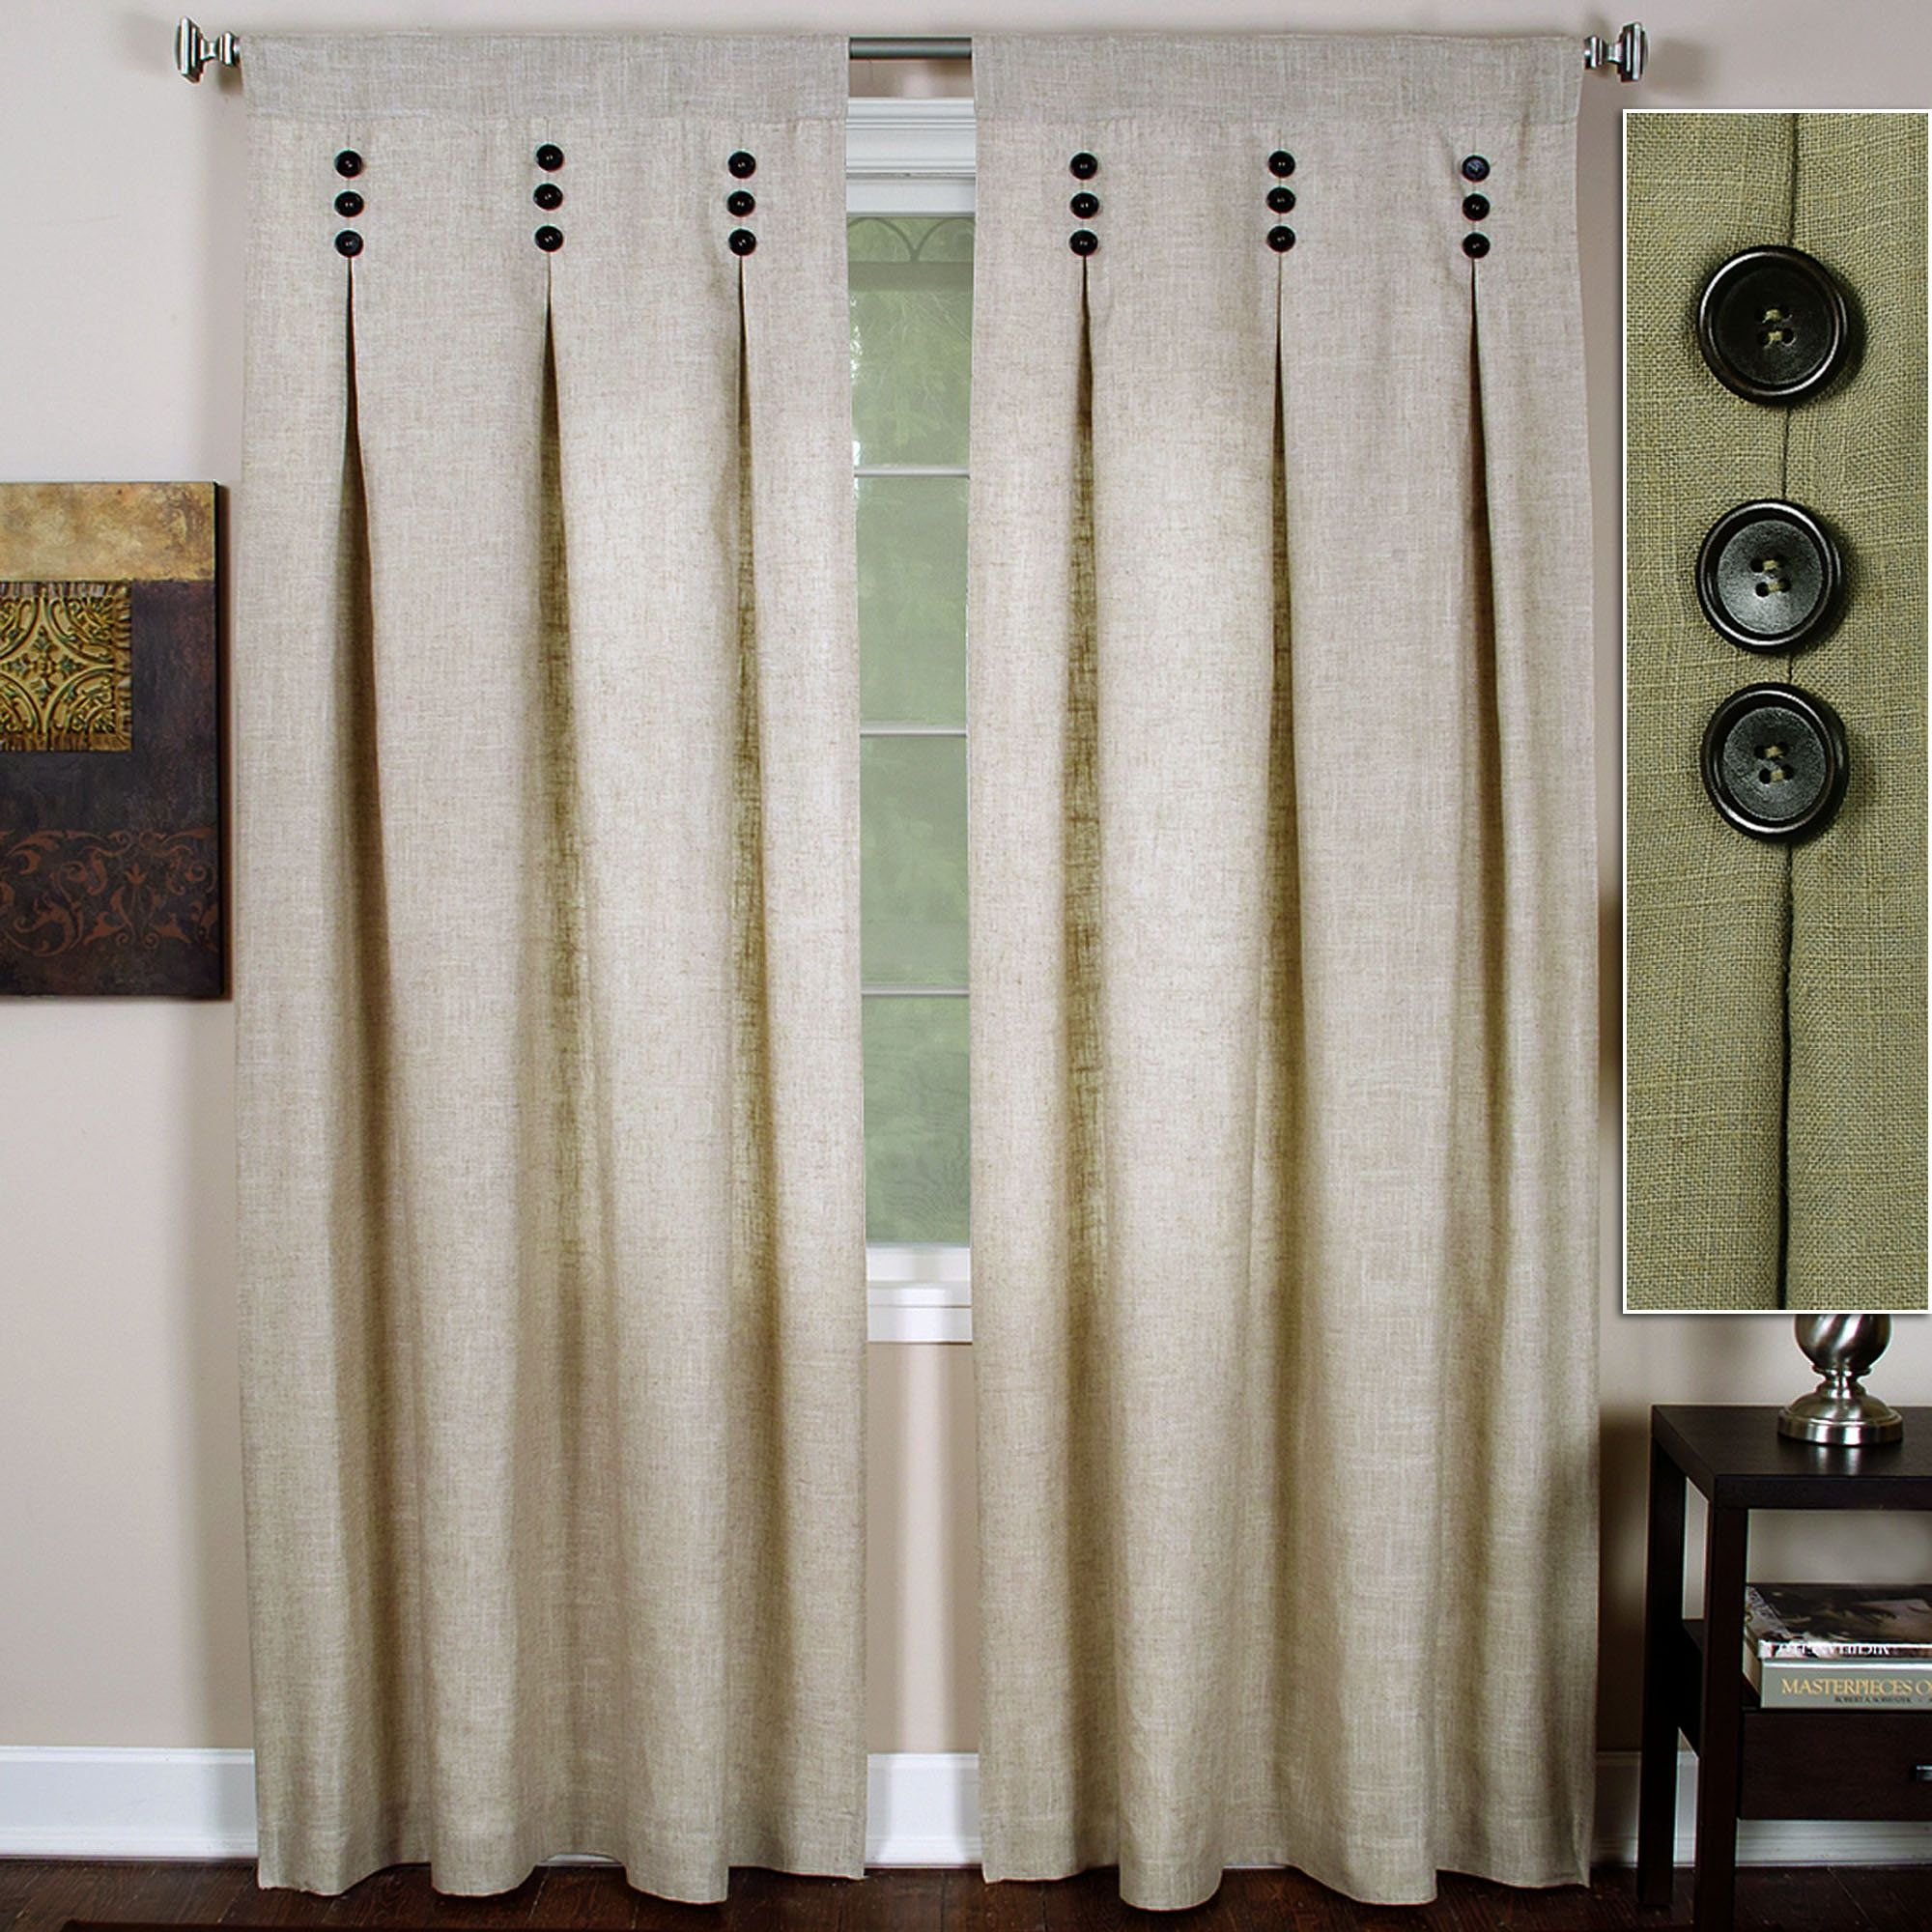 Green Drapes Curtains And Write Spell Drape Curtain Ideas Modern